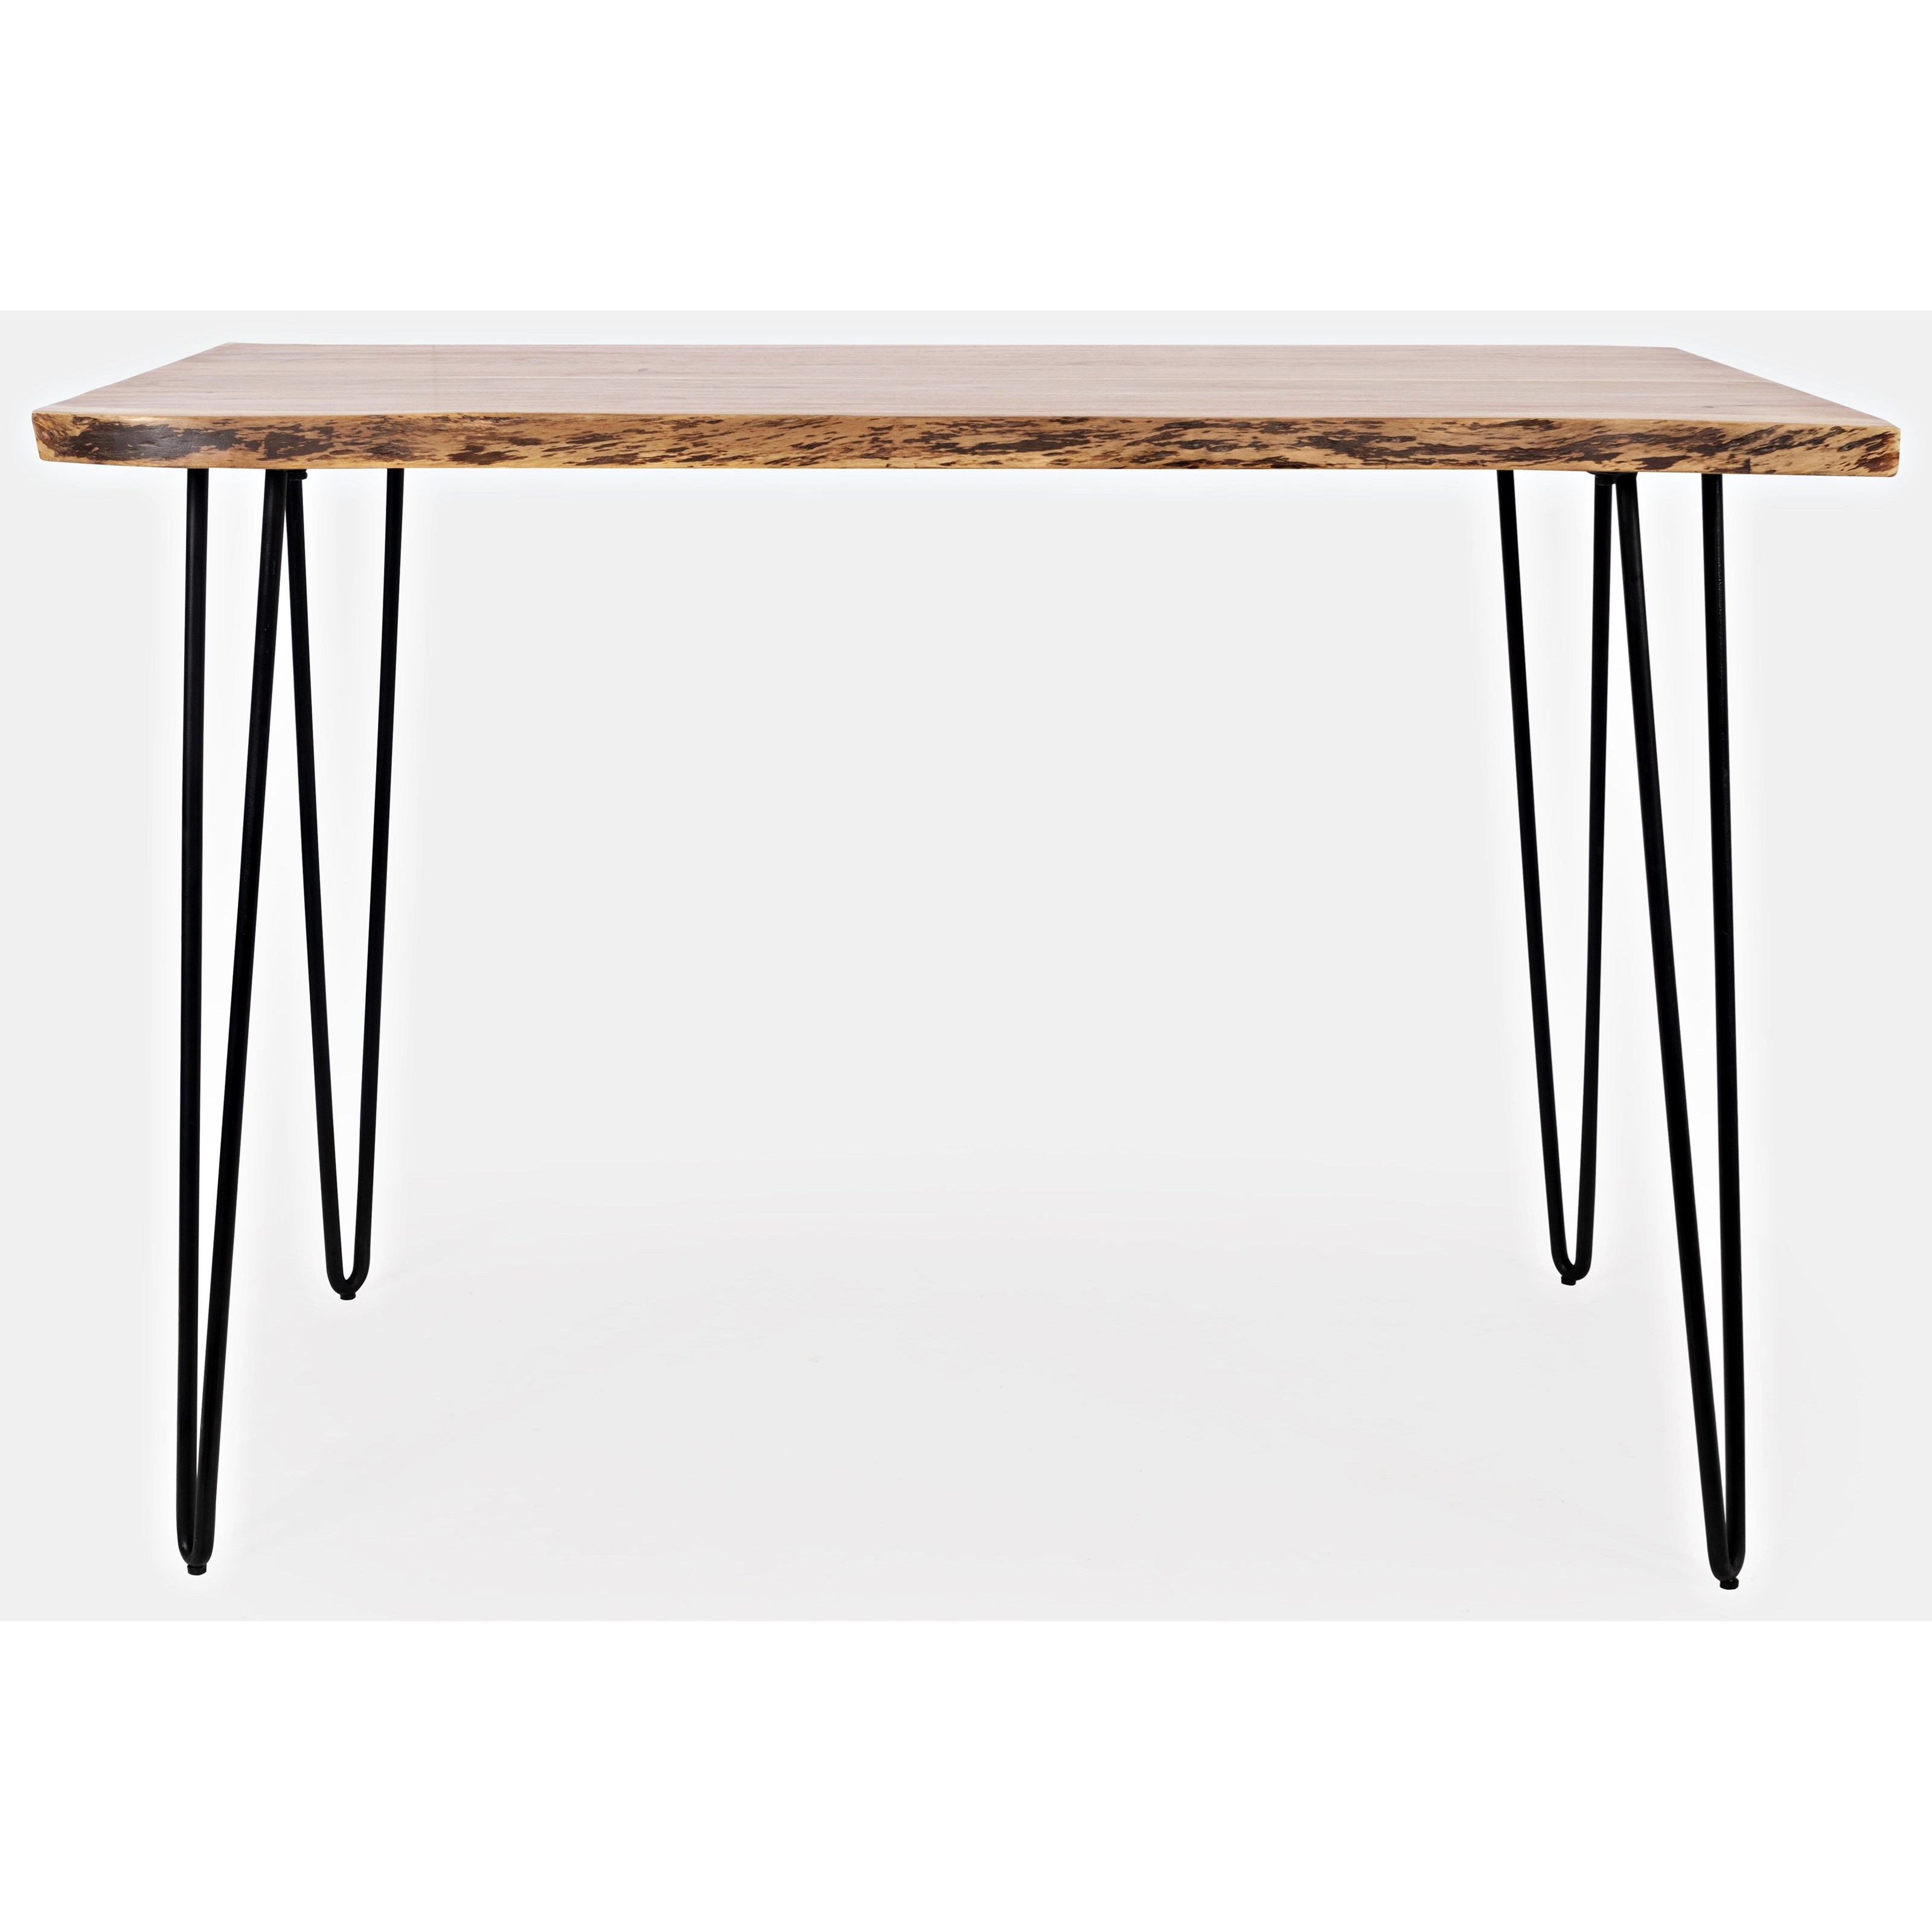 Live Edge Natural Live Edge Counter Height Table at Walker's Furniture